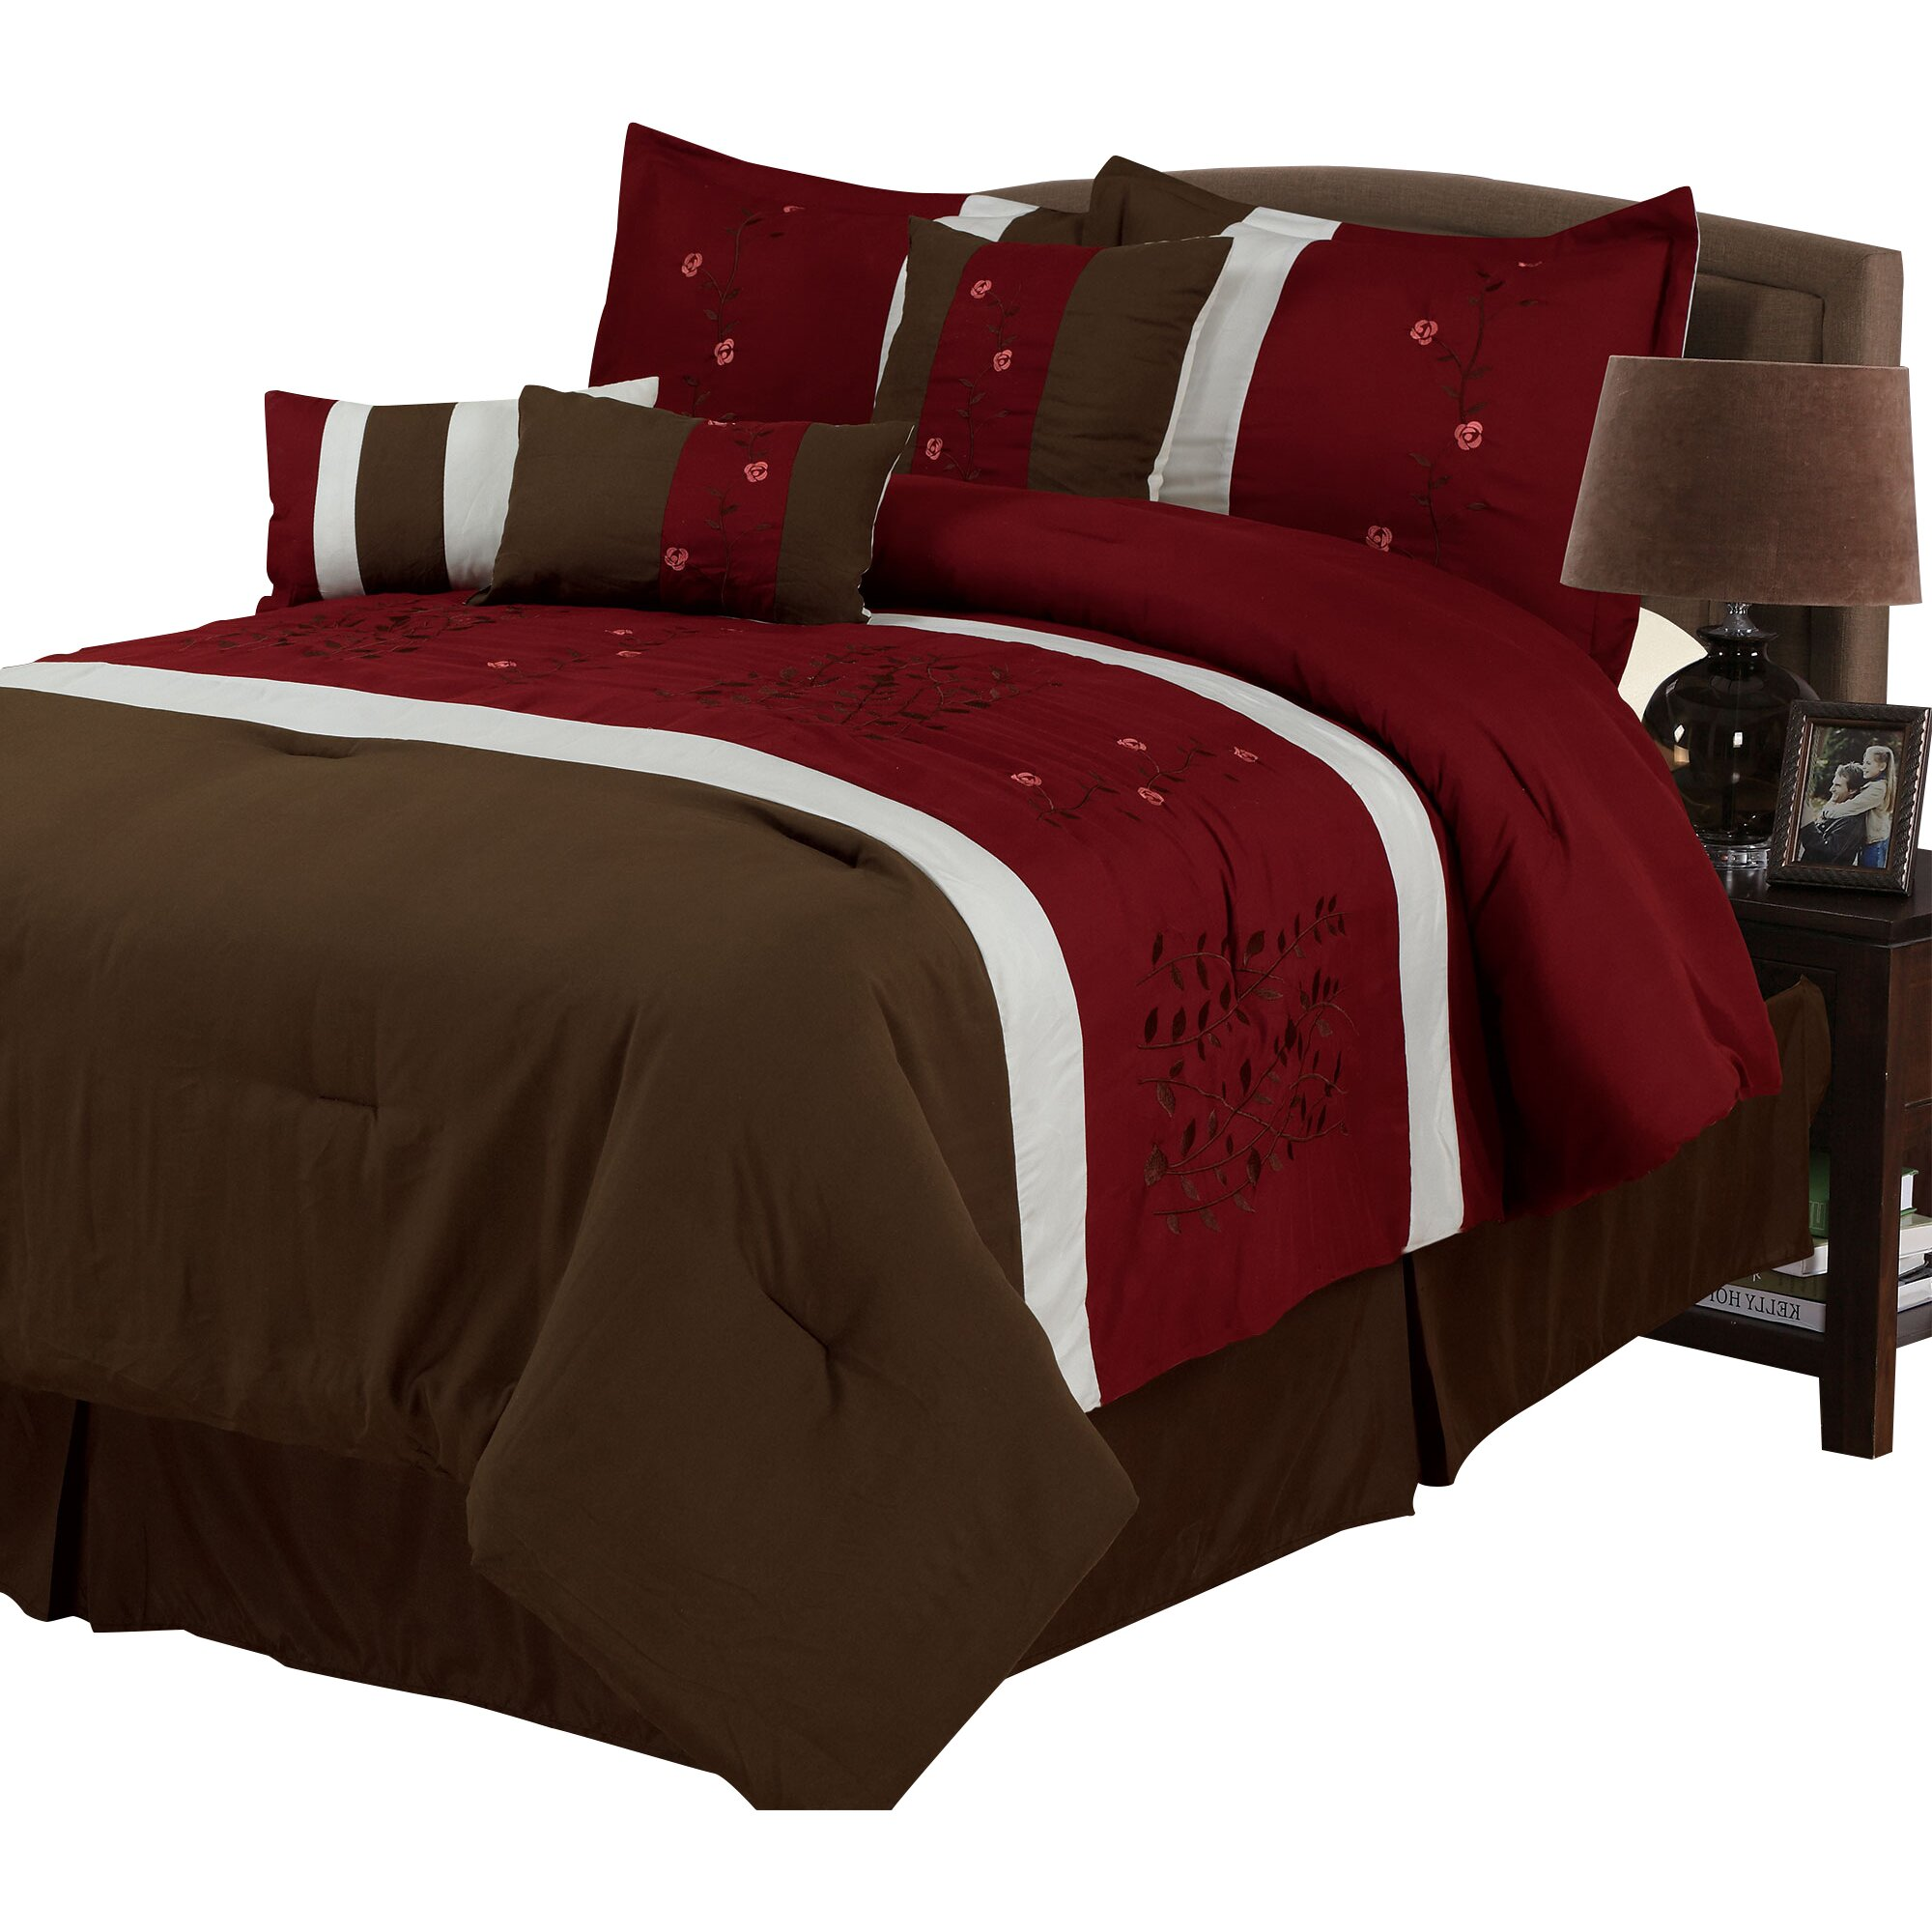 Brown and red bedding - Lavish Home Sarah 7 Piece Comforter Set In Brown Amp Red